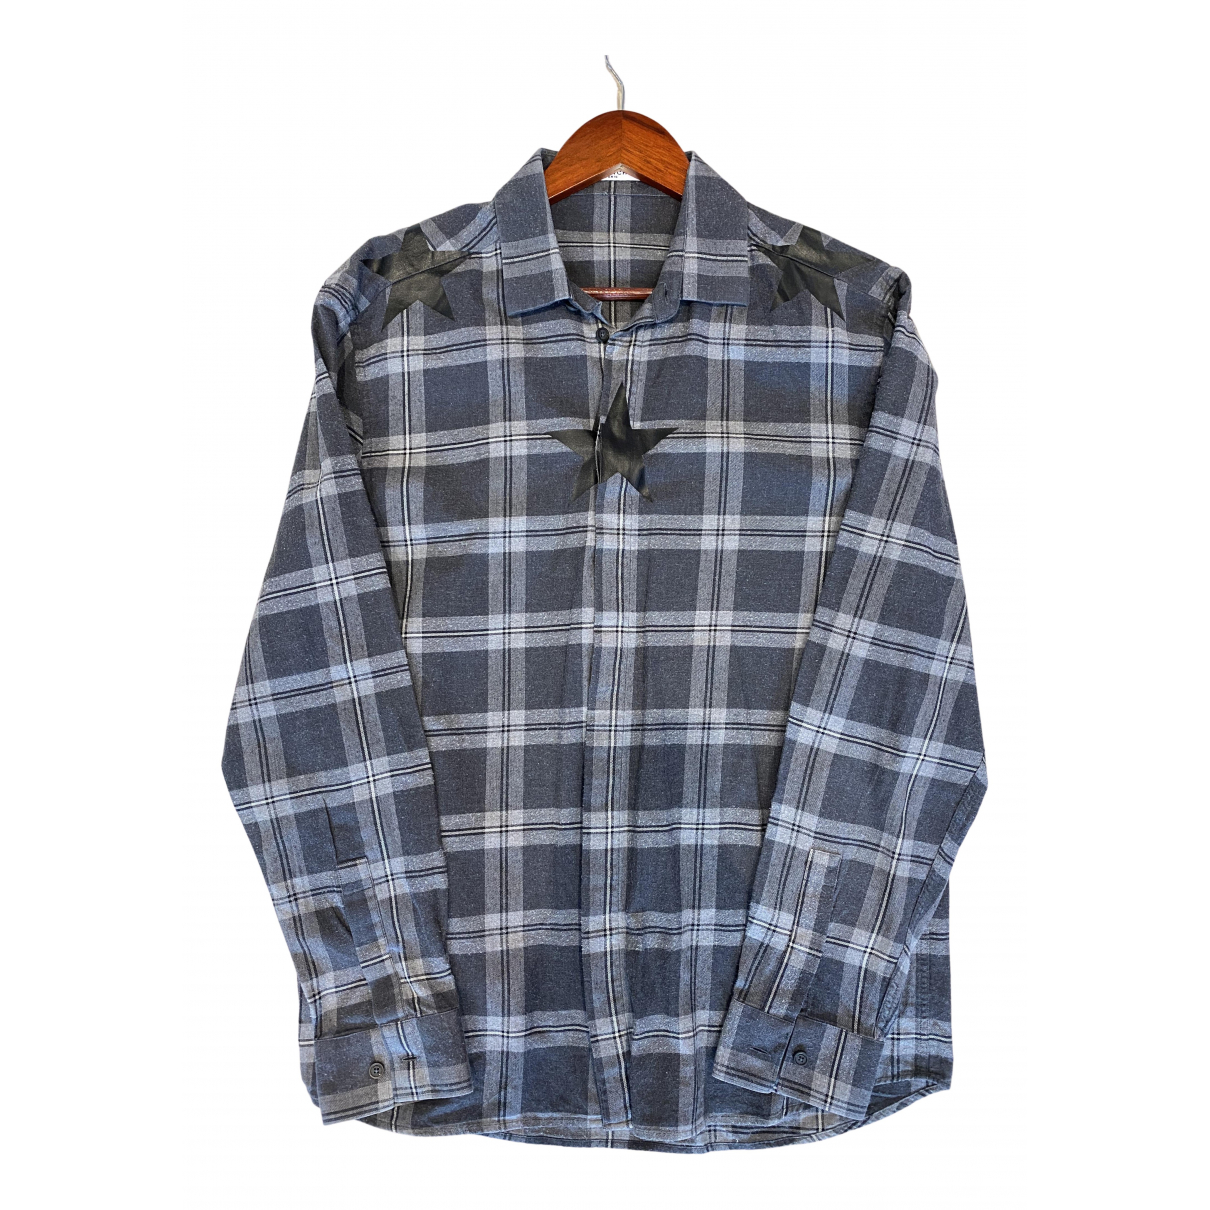 Givenchy N Grey Cotton Shirts for Men 41 EU (tour de cou / collar)